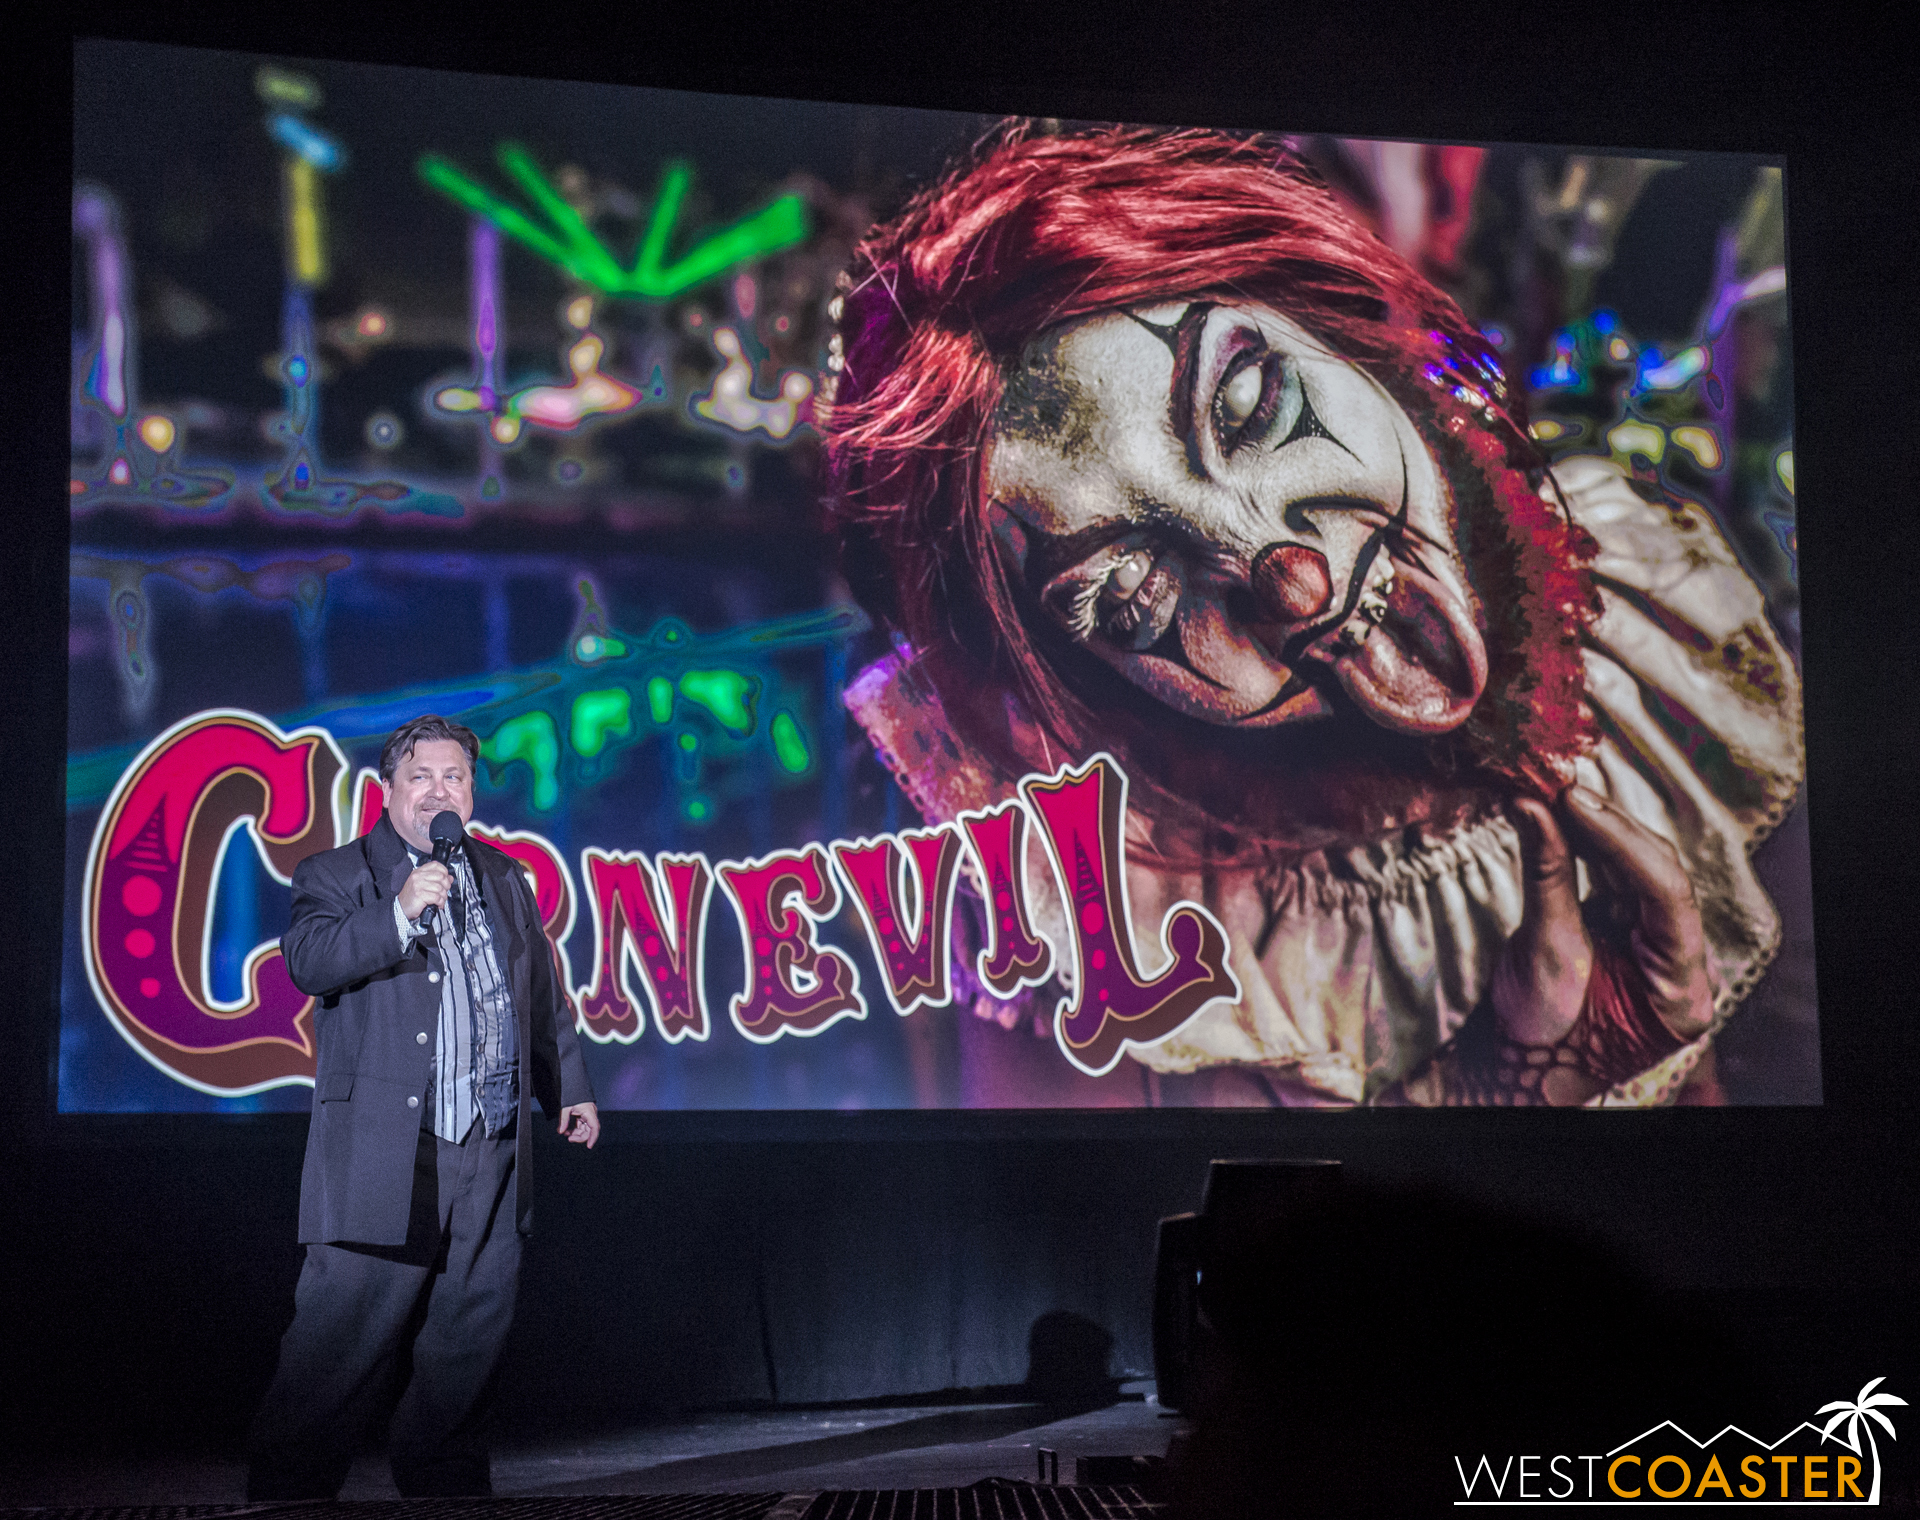 Carnevil returns with clowns, clowns, clowns. The big news was its pairing with its own maze, and after the announcement, it was revealed that said maze (Dark Ride, more details below) would see monsters overlap with Carnevil monsters. A new demented soundtrack will also grace guests' ears, which is good news, because the music in Carnevil is also so sinisterly fun!